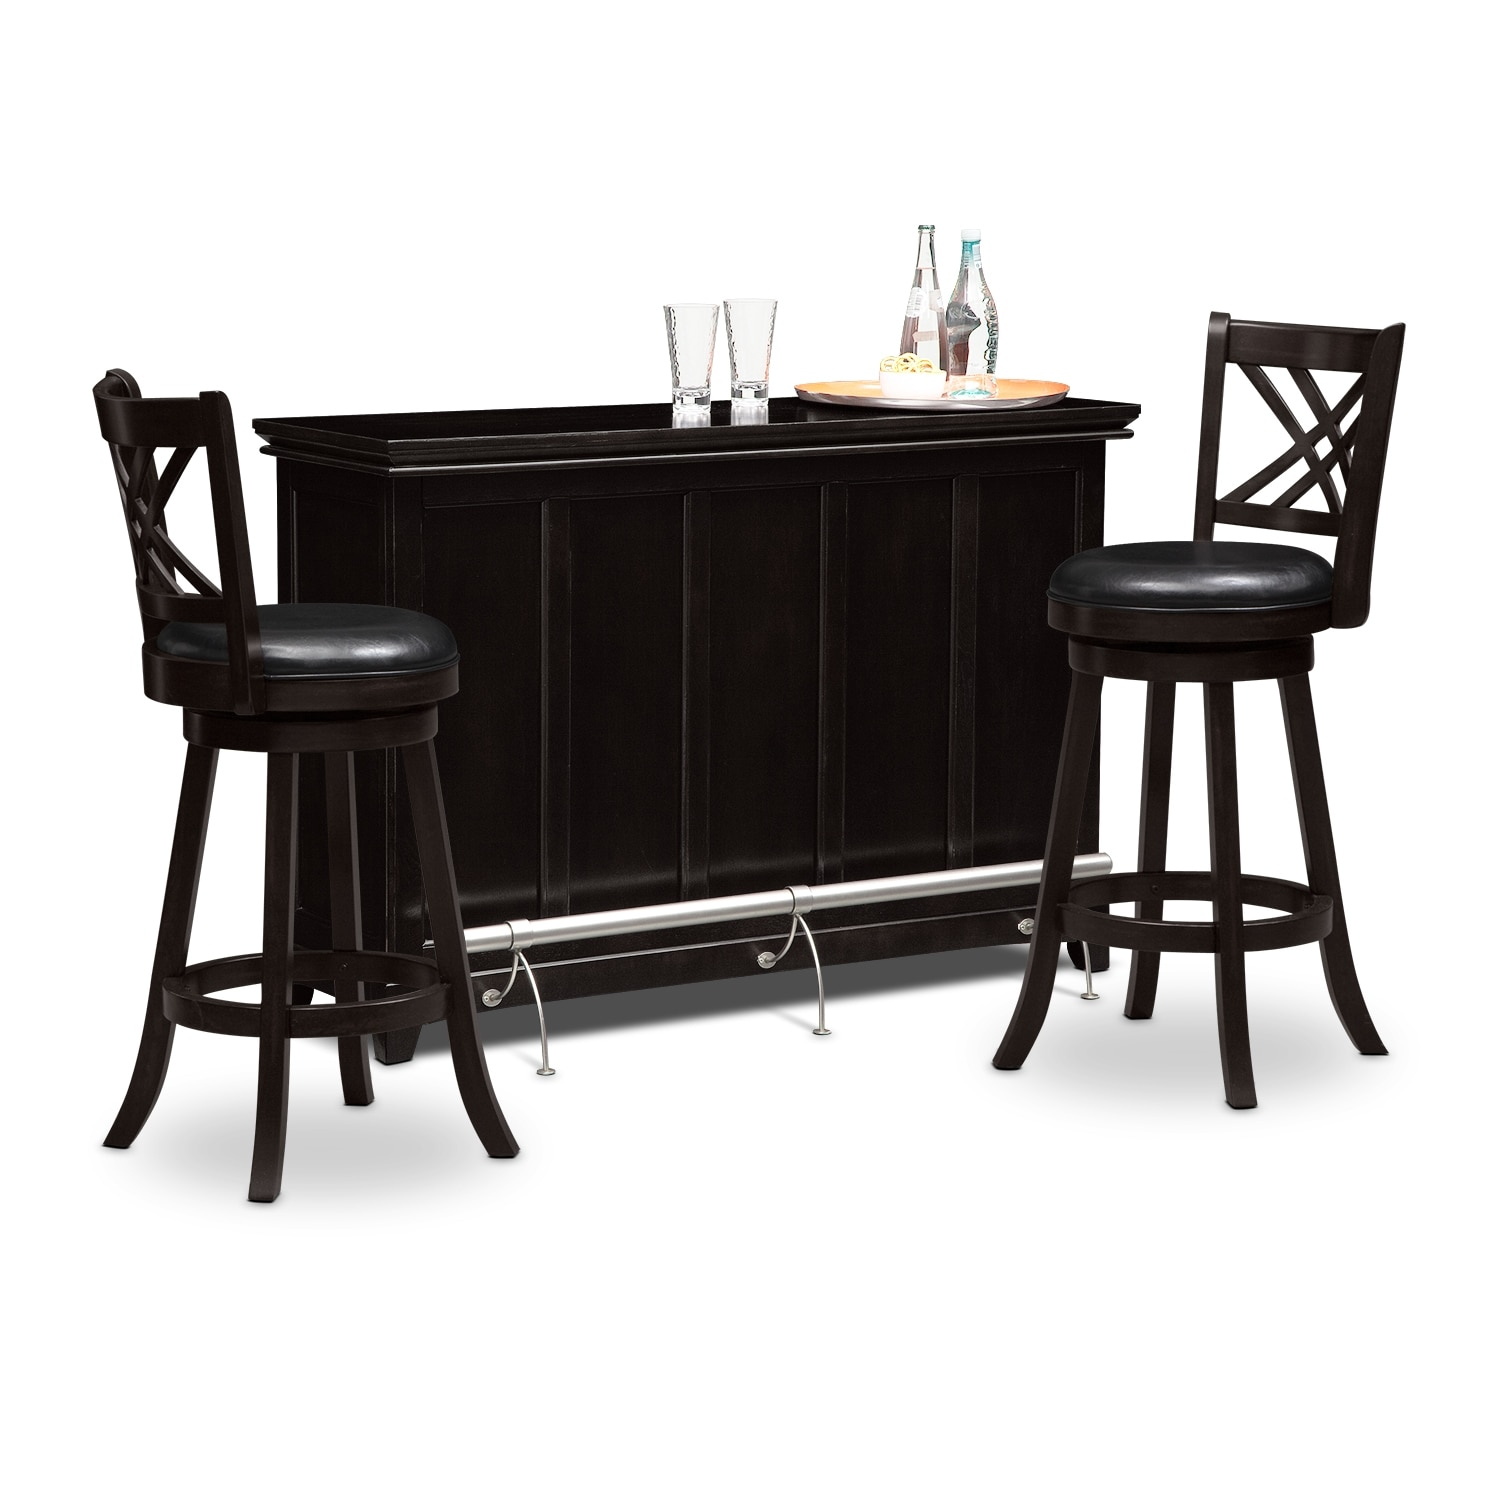 Accent Bars Value City Furniture